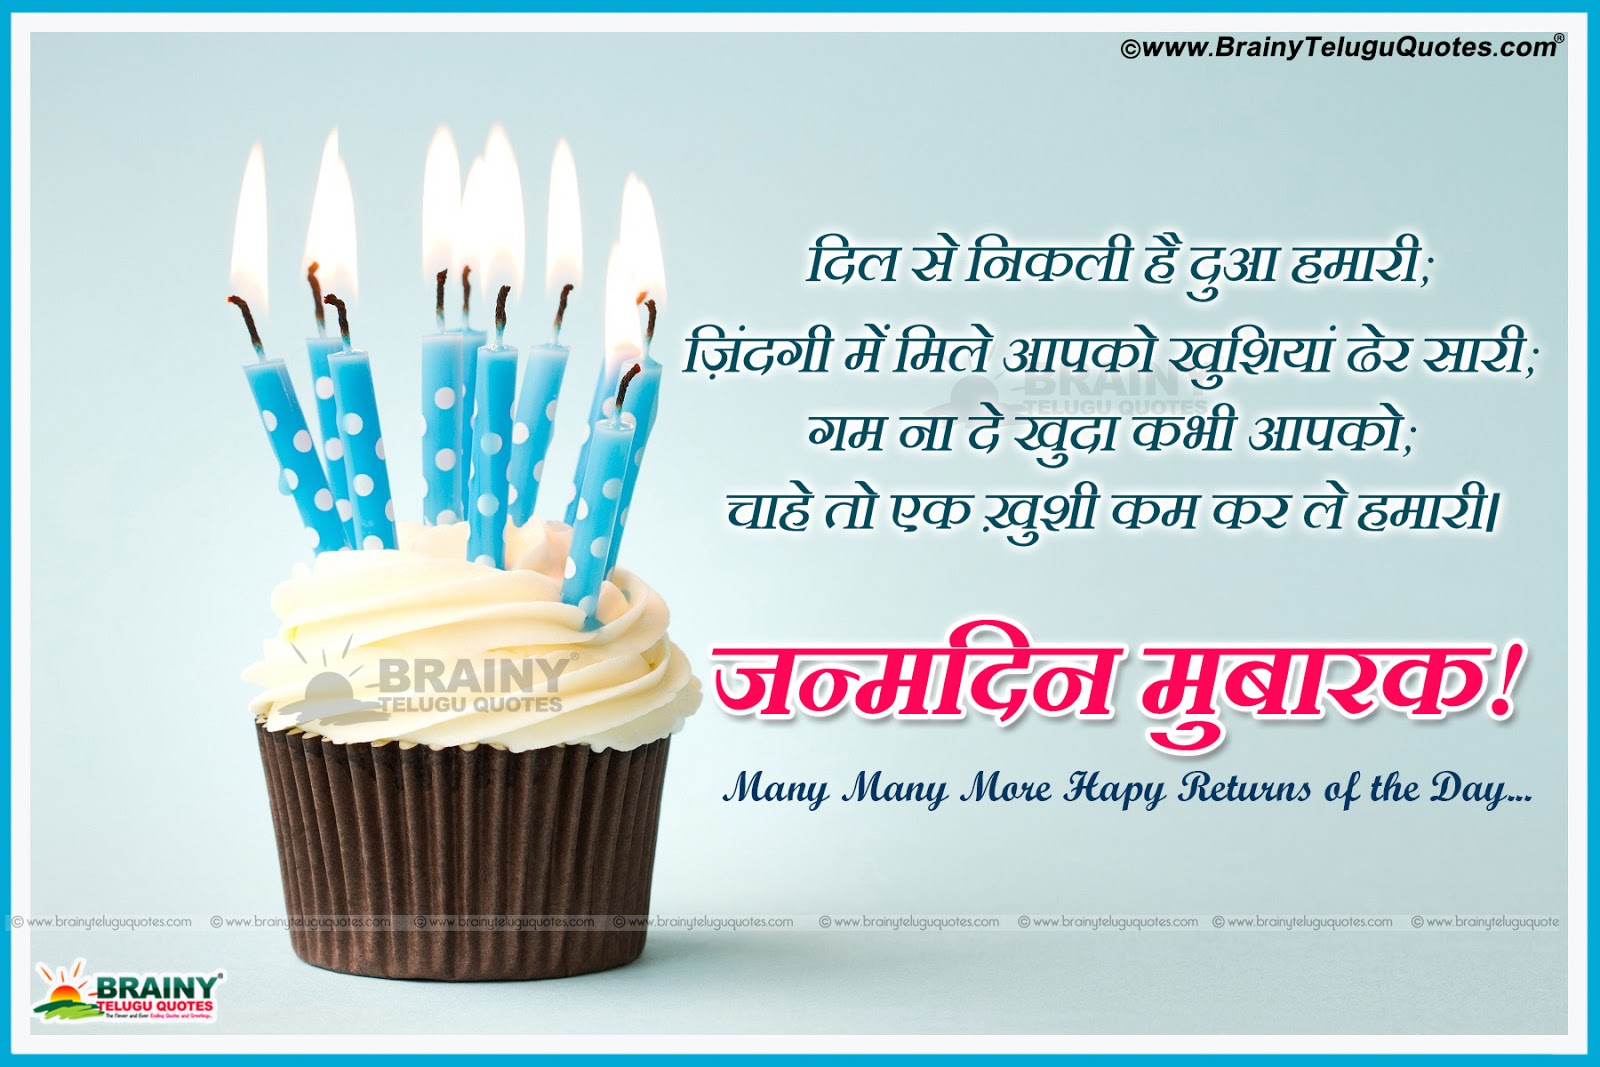 brainy quotes birthday message ; happy-birthday-wishes-for-girlfriend-in-hindi-awesome-new-happy-birthday-wishes-in-hindi-of-happy-birthday-wishes-for-girlfriend-in-hindi